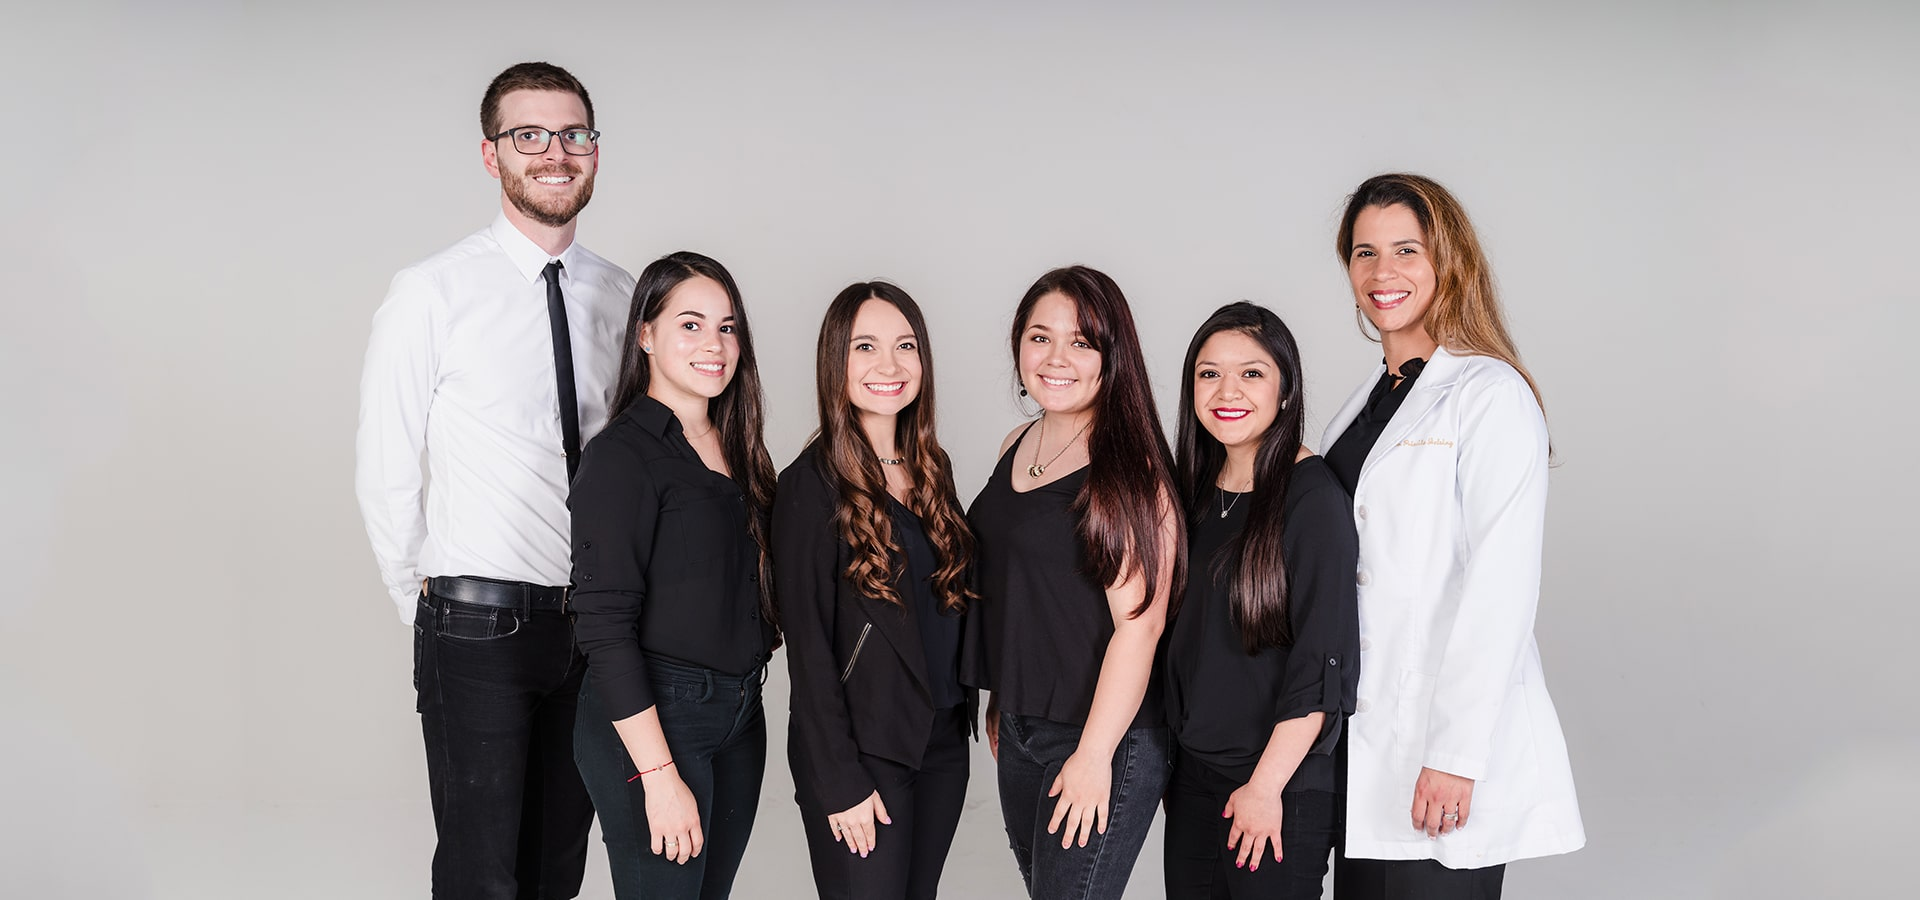 Spartan Family Dentistry team standing in front of a grey background